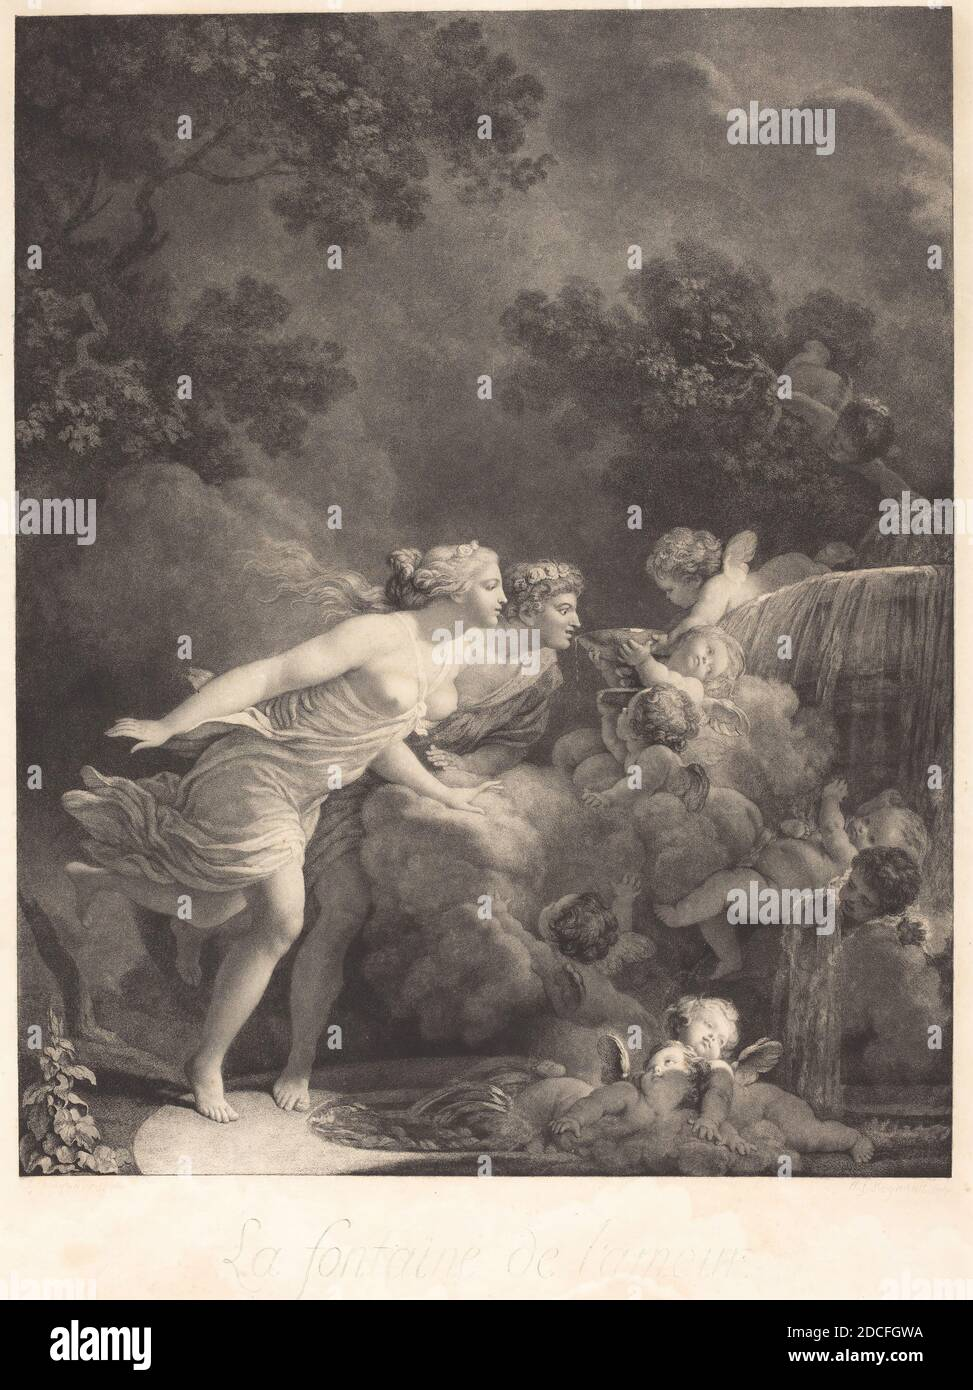 Nicolas François Regnault, (artist), French, 1746 - 1810, Jean Honoré Fragonard, (artist after), French, 1732 - 1806, La Fontaine d'Amour (The Fountain of Love), 1785, stipple etching, image: 53.4 x 42.8 cm (21 x 16 7/8 in.), plate: 64.2 x 48.2 cm (25 1/4 x 19 in Stock Photo